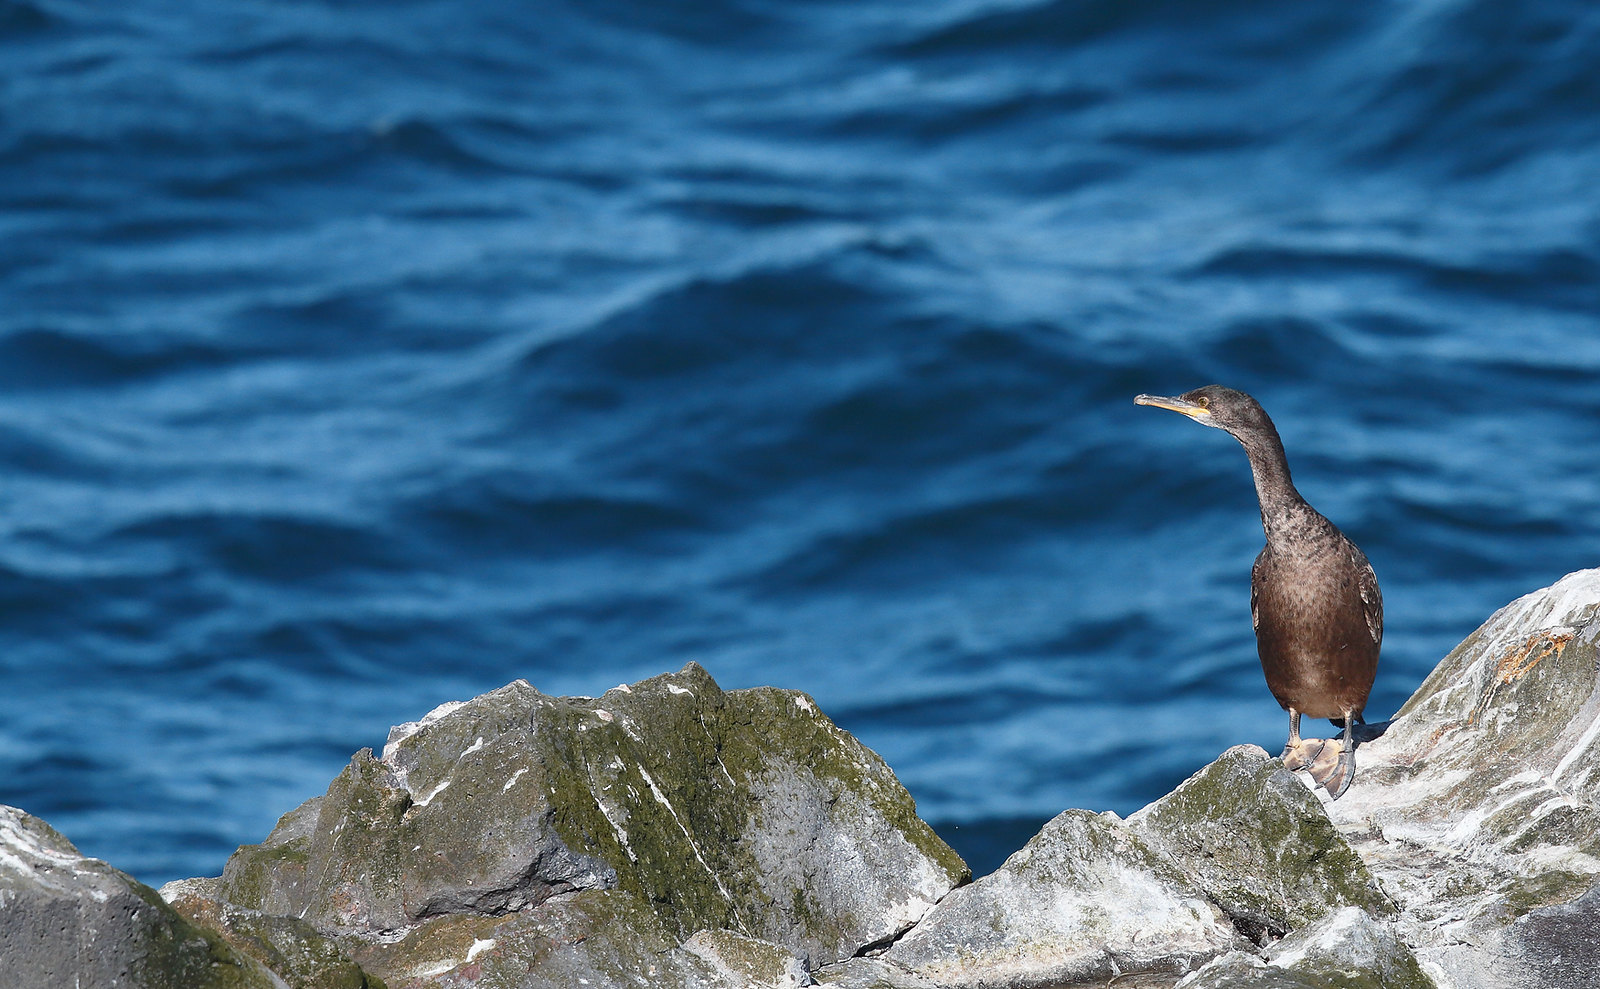 Another Shag on another rock